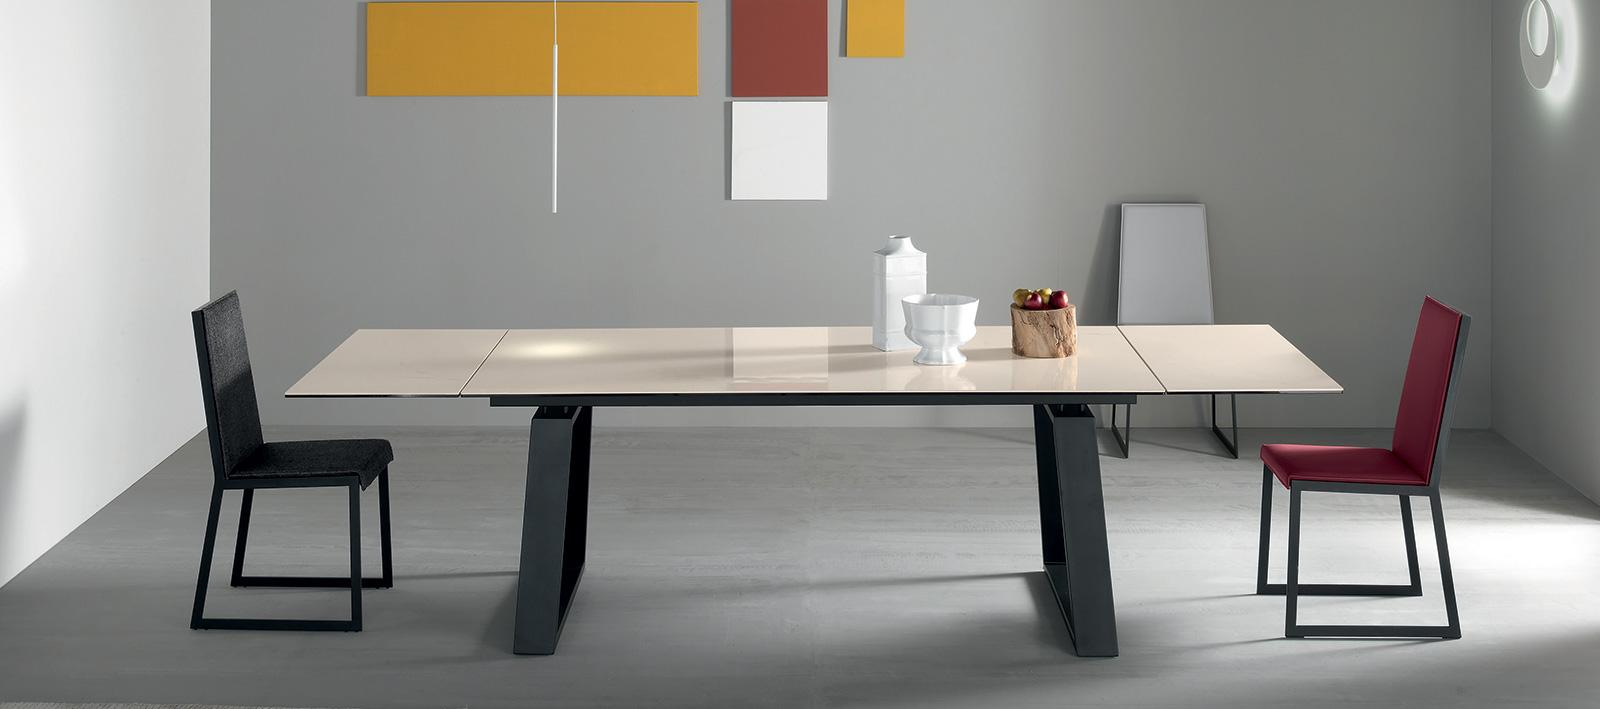 Table en c ramique extensible vente en ligne italy for Table design a rallonge